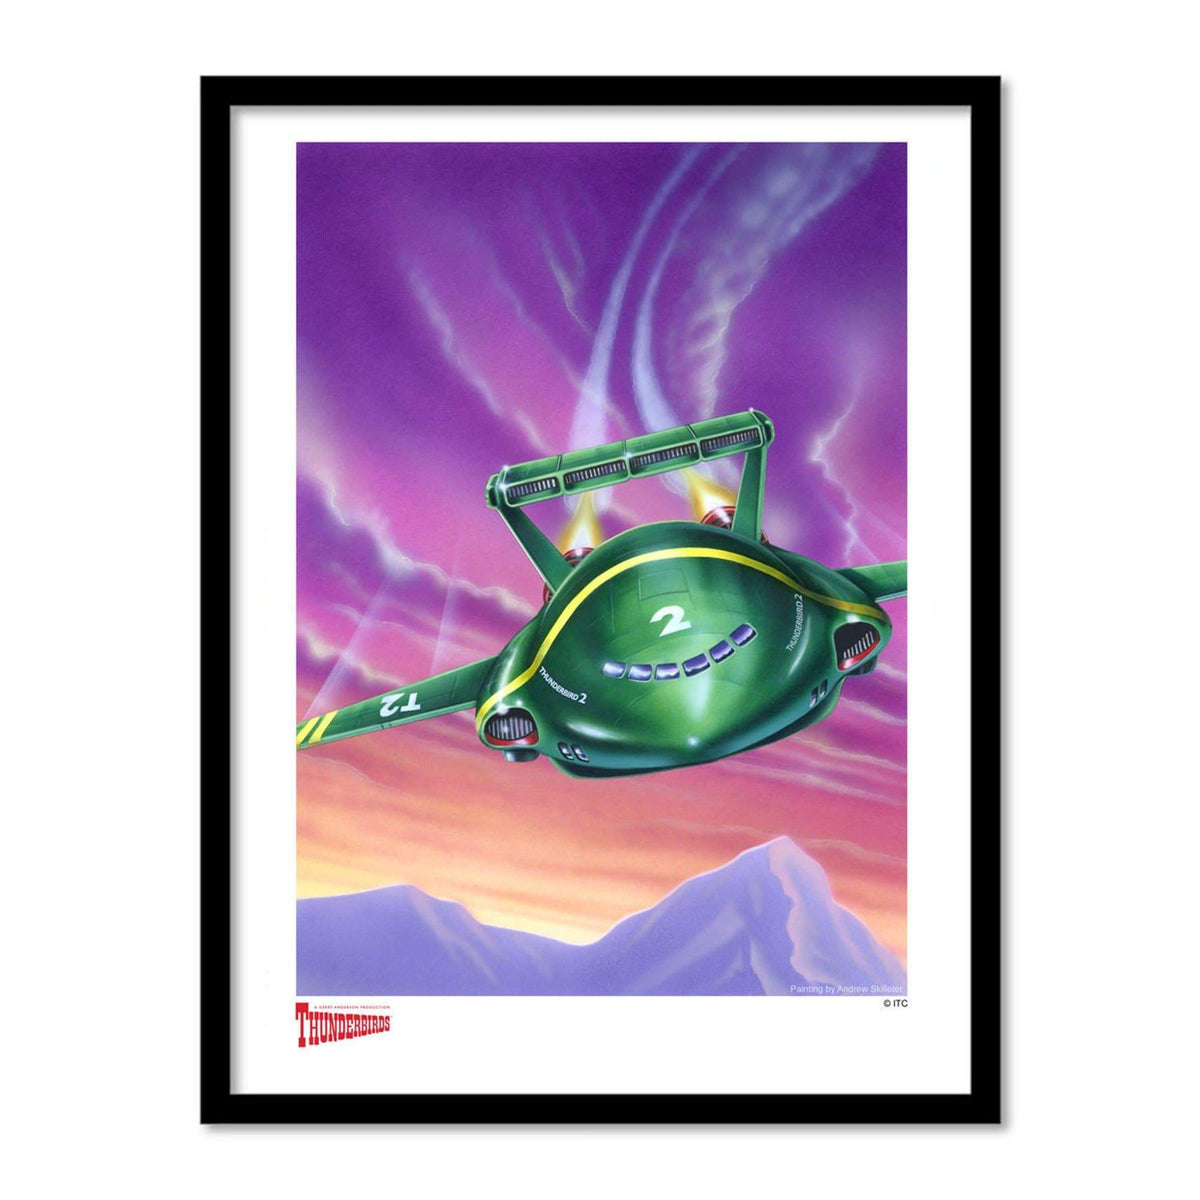 Thunderbird 2 Artist Signed Print (Official & Exclusive] - The Gerry Anderson Store